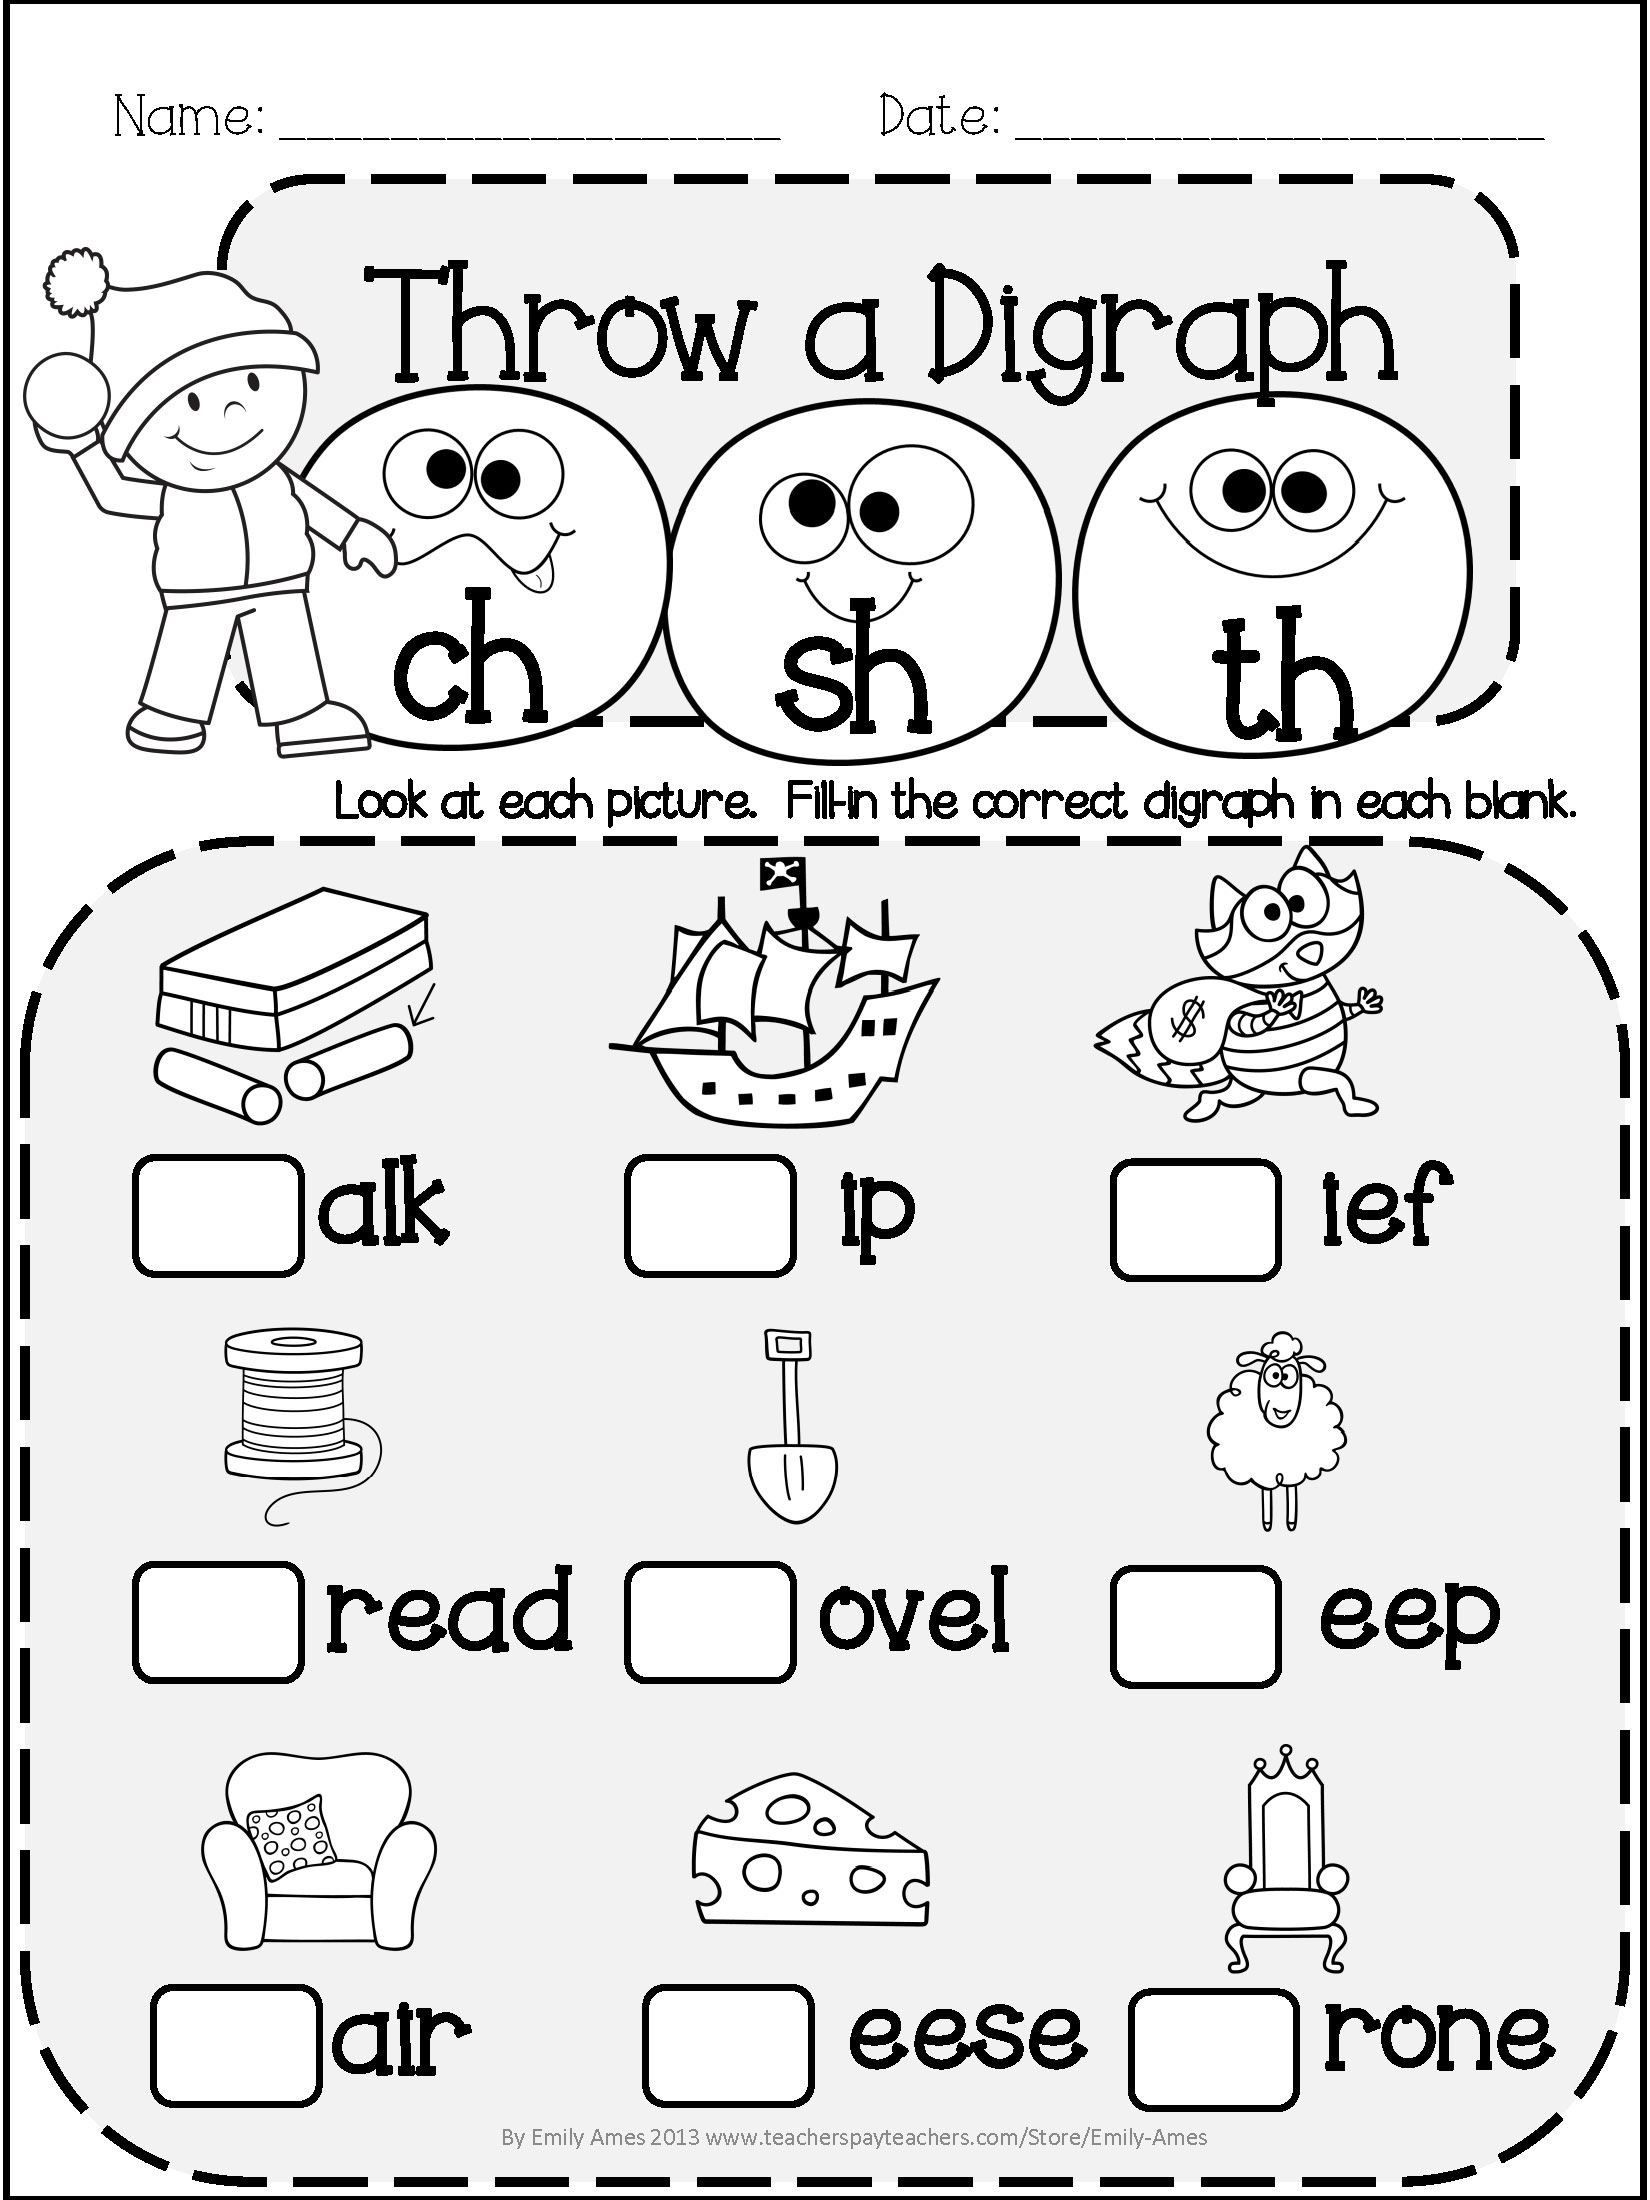 Ou Ow Worksheets 3rd Grade Maggie Clement Maggiecle Ou Ow Phonics Worksheets    Blends worksheets [ 2200 x 1650 Pixel ]